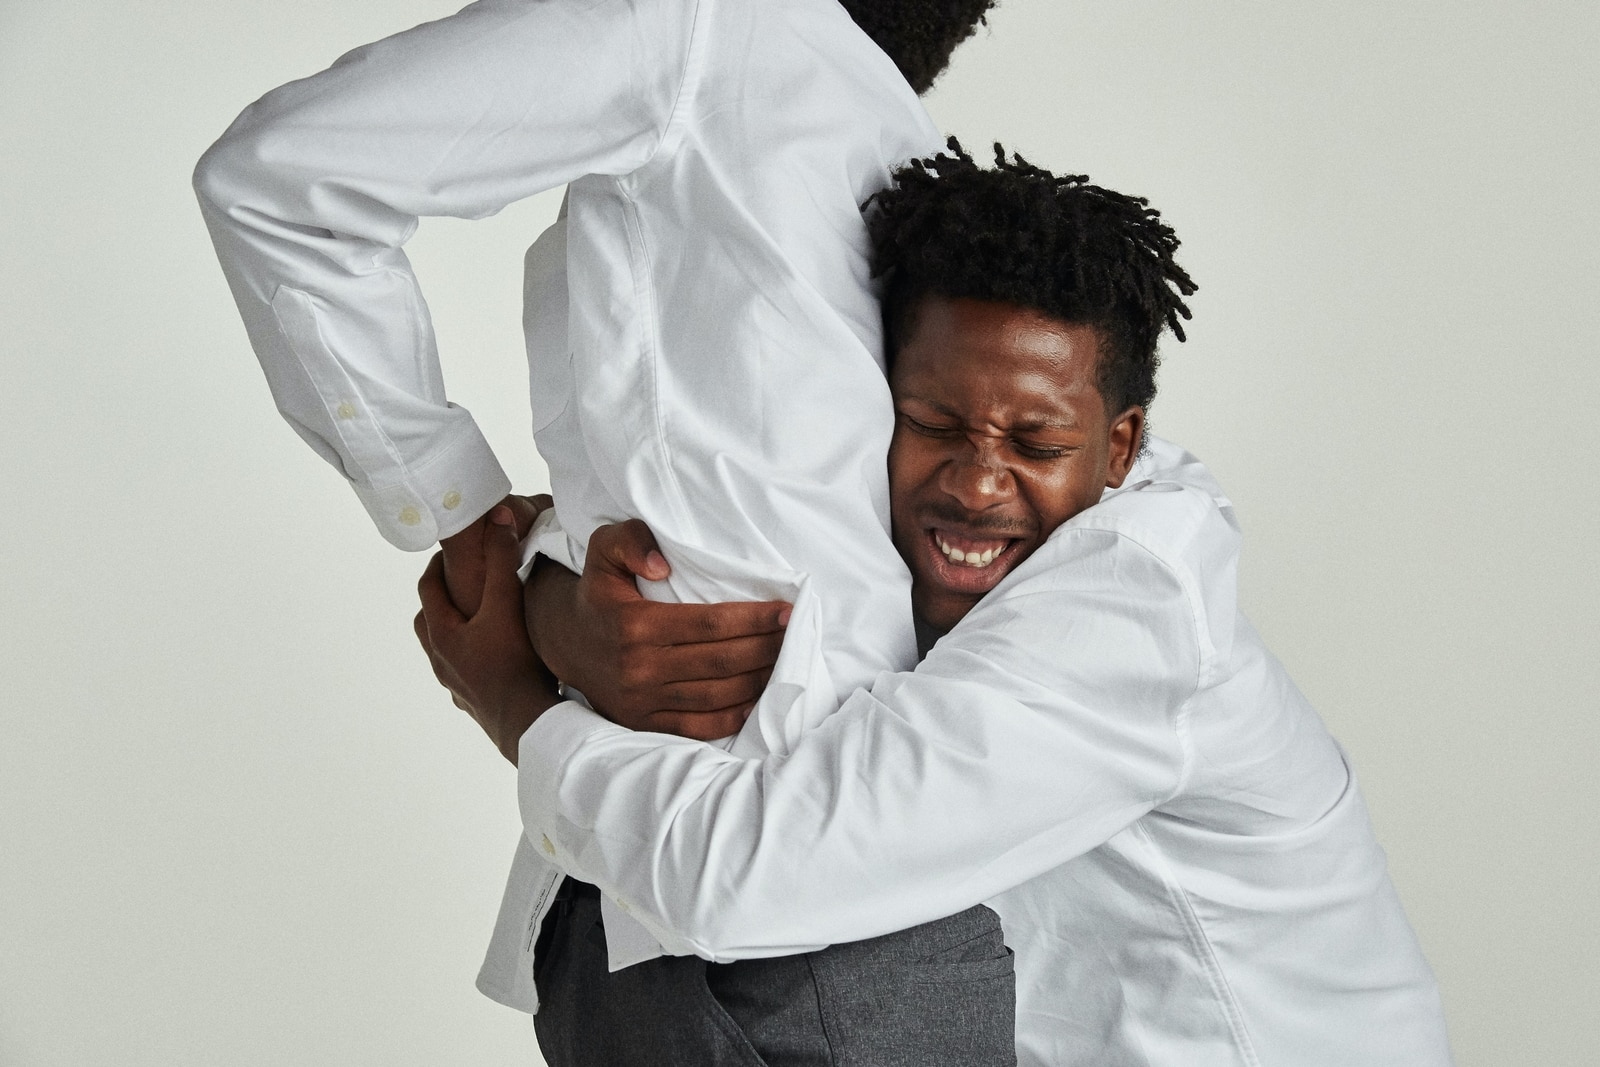 Friendship: Man hugging another man